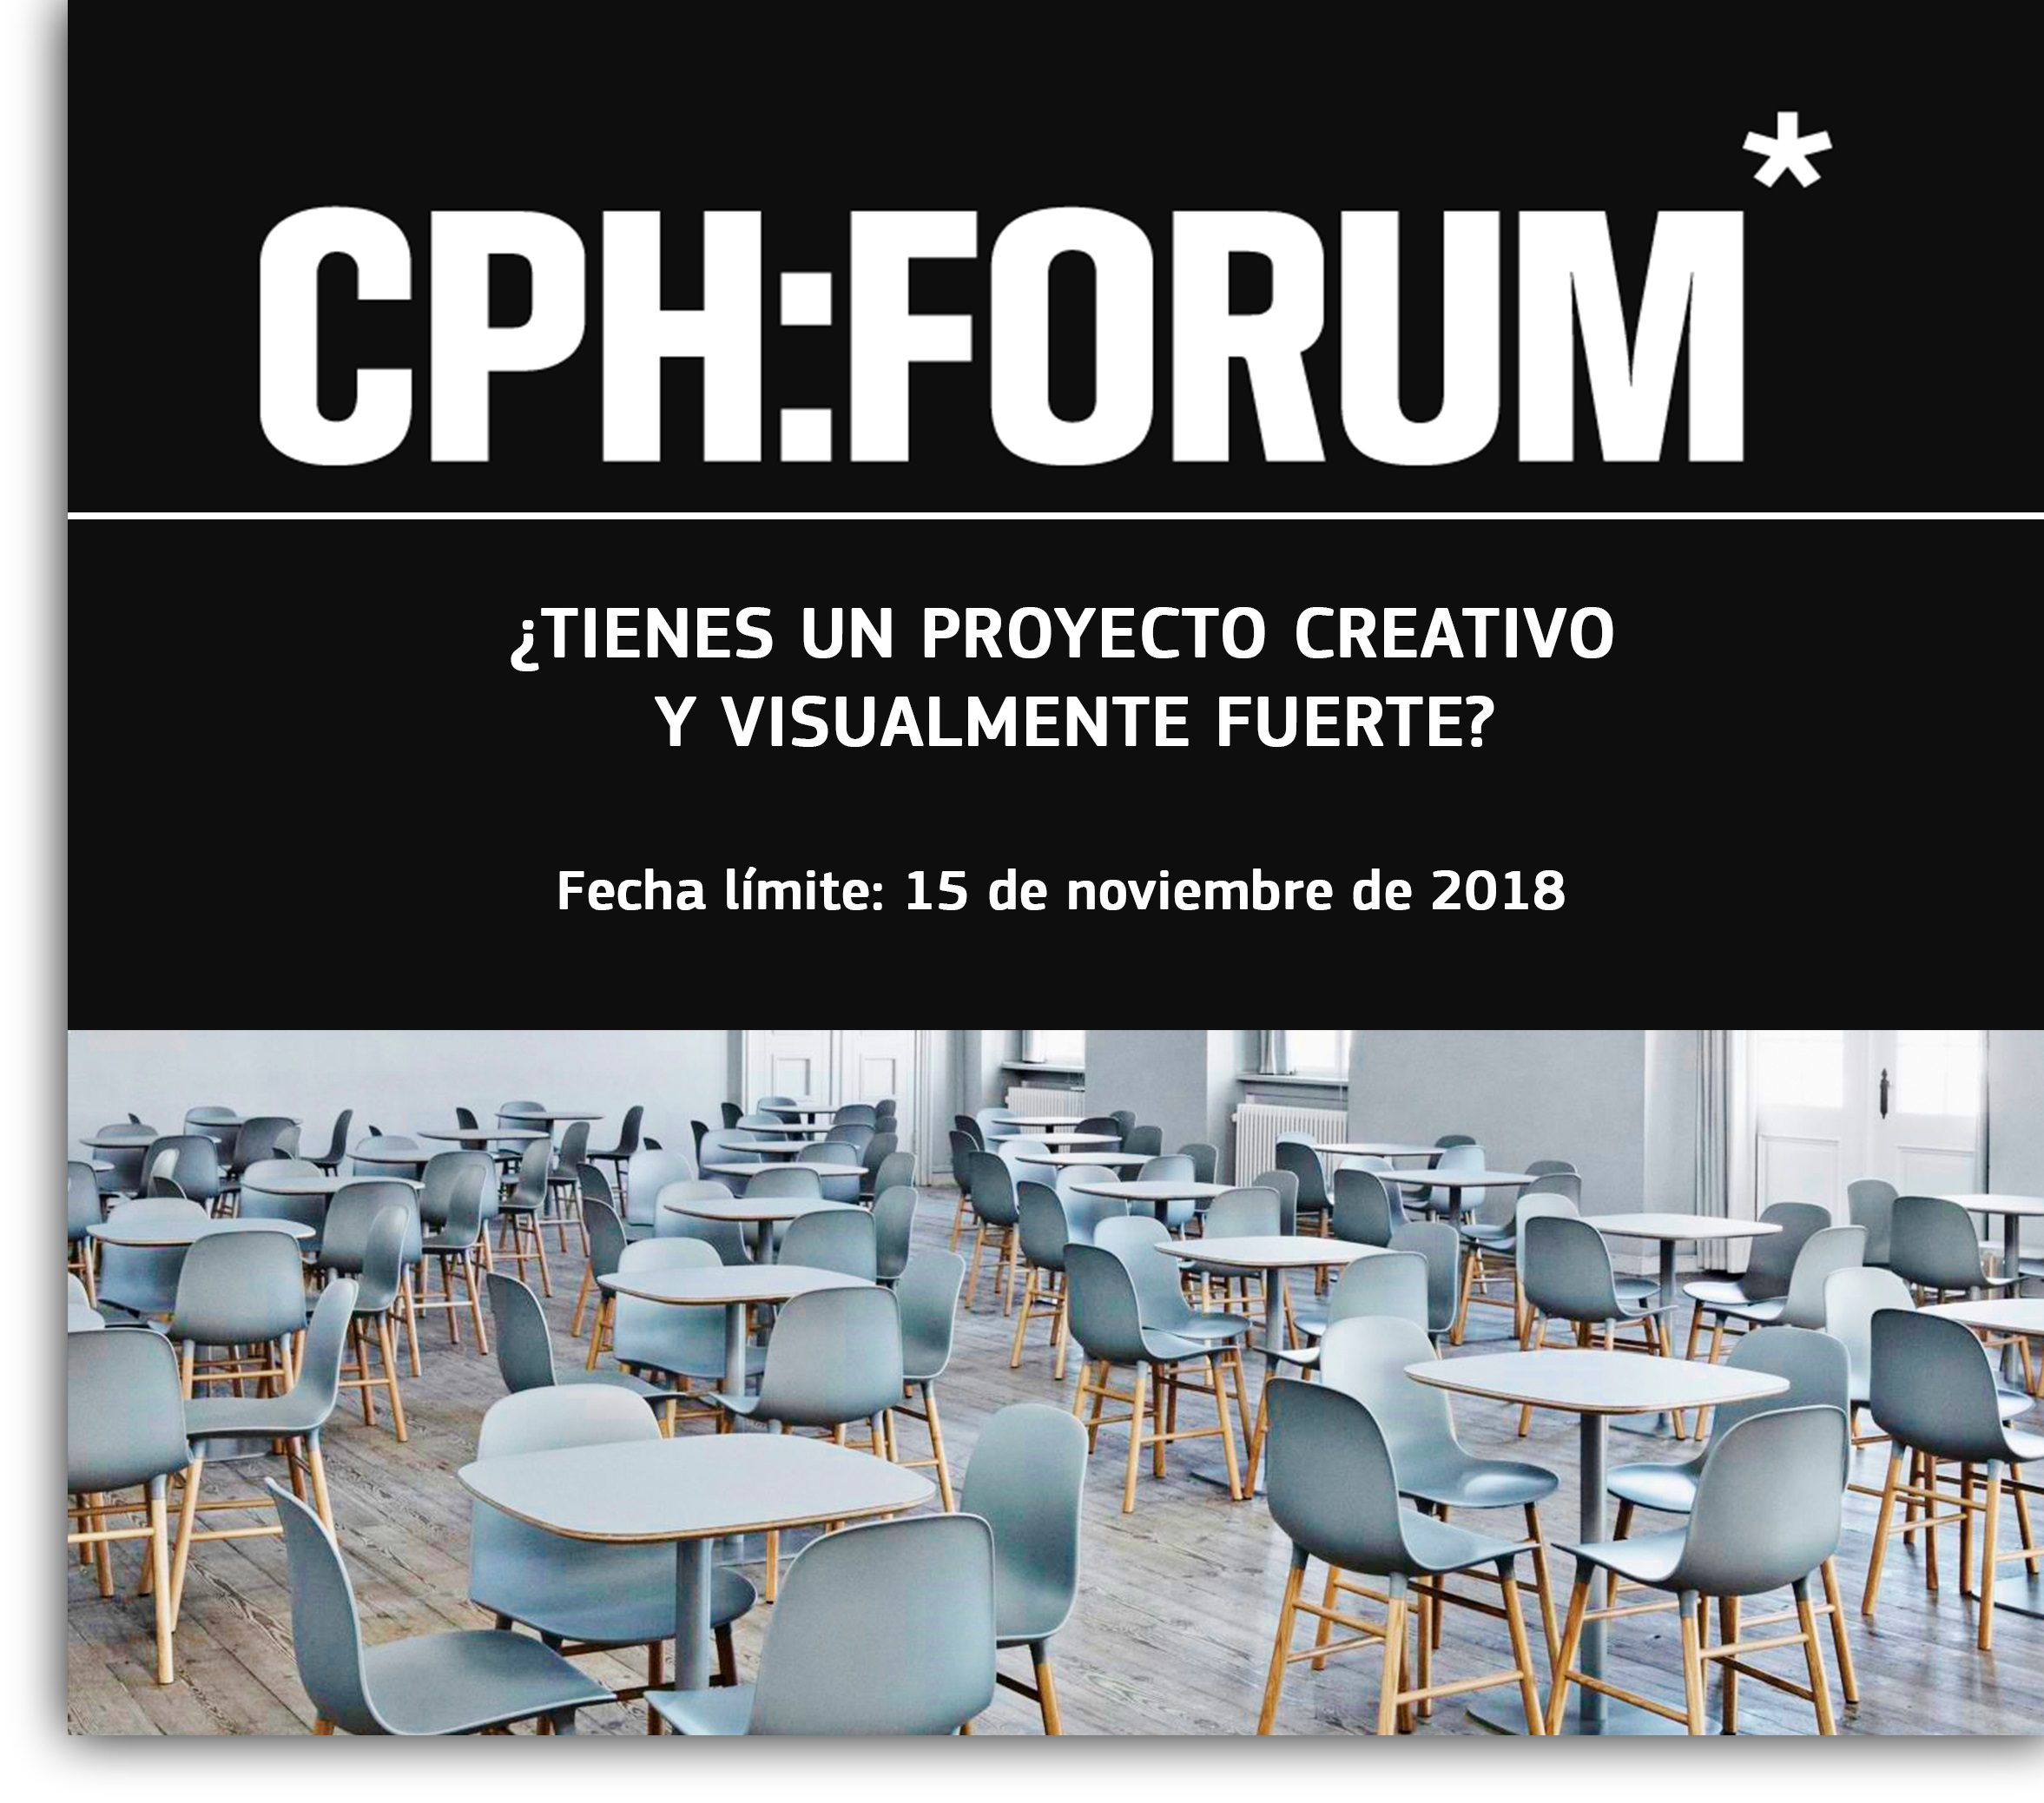 CPHforum2018InteriorES